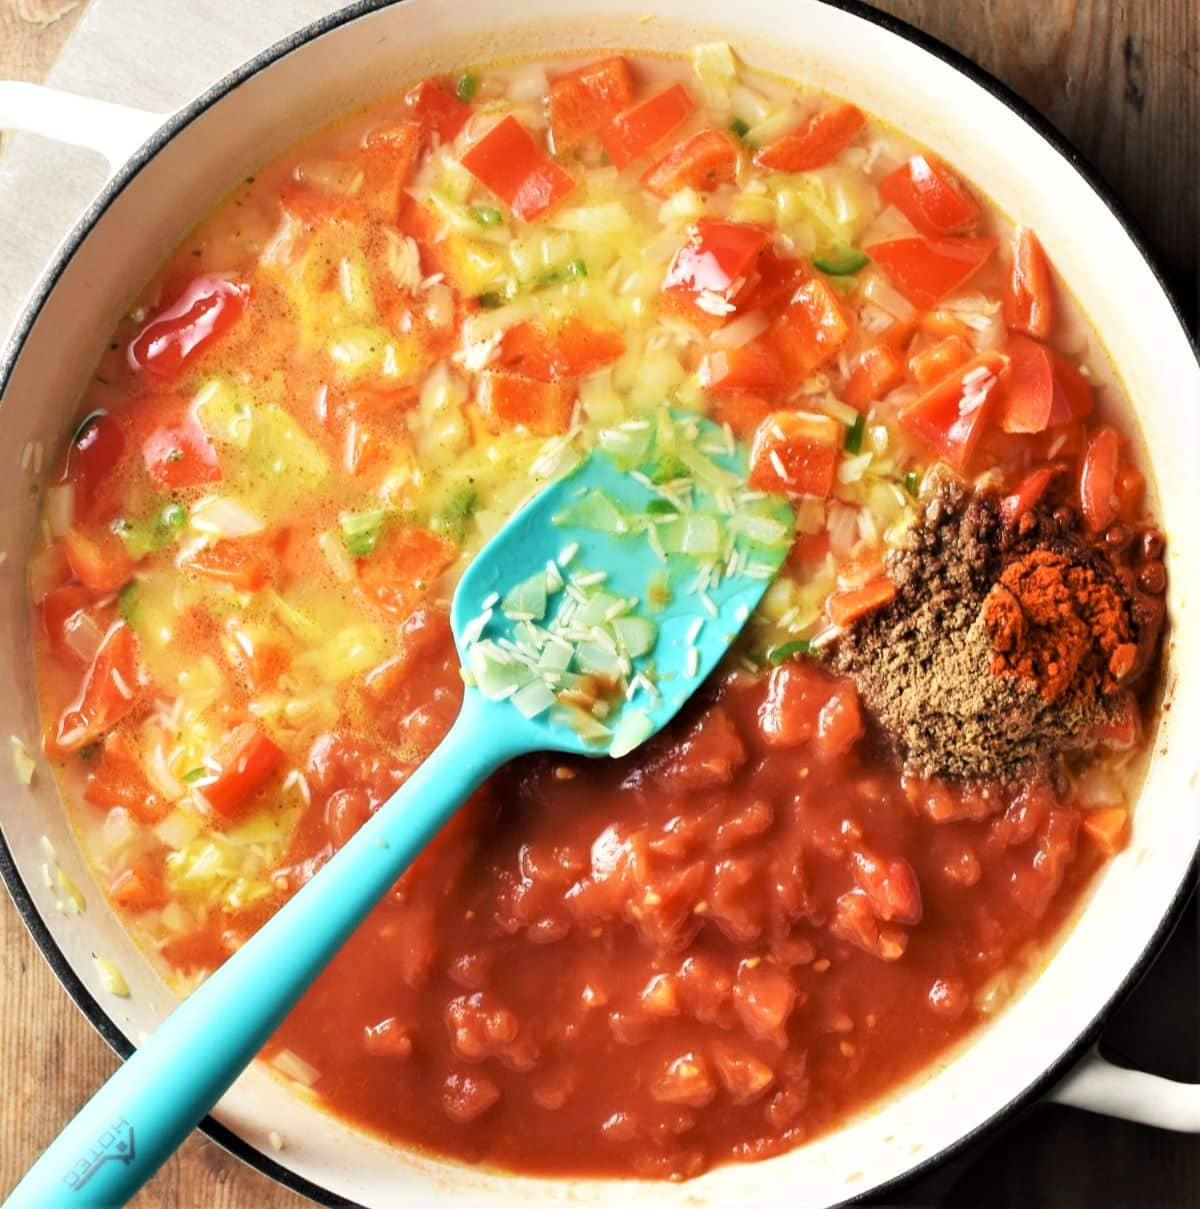 Tomatoes, rice and vegetable mixture in large pan with blue spoon.